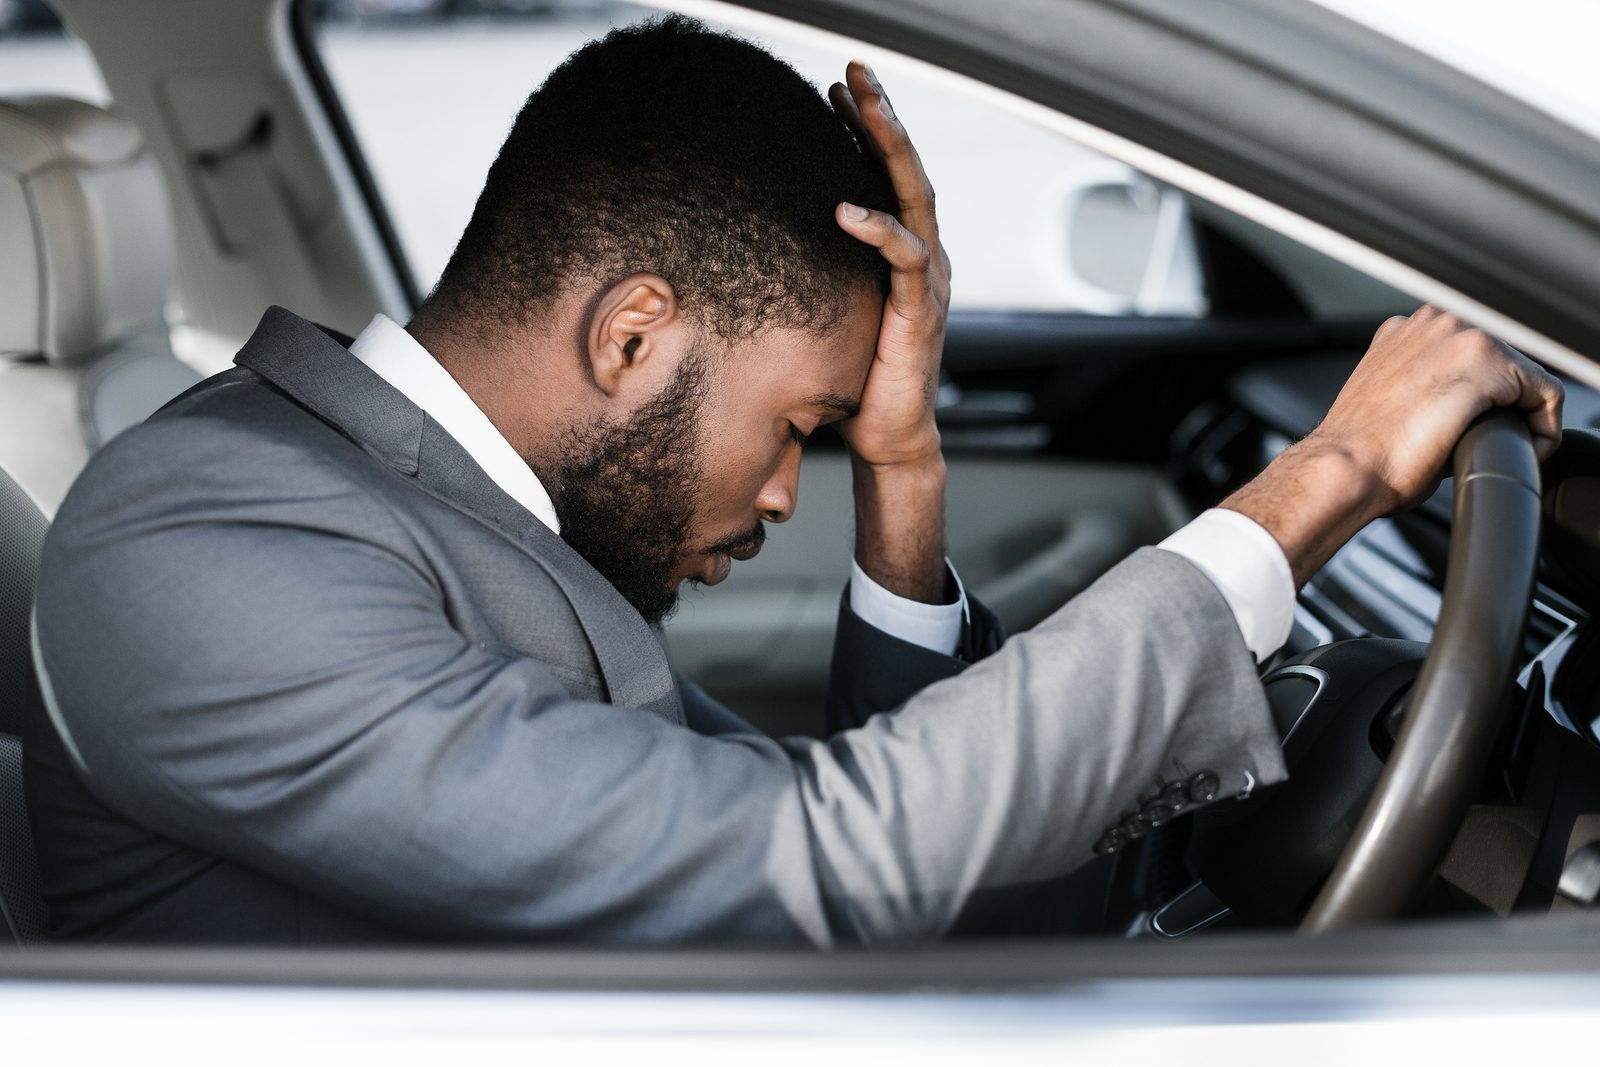 34m Brits Admit To Finding Driving Stressful